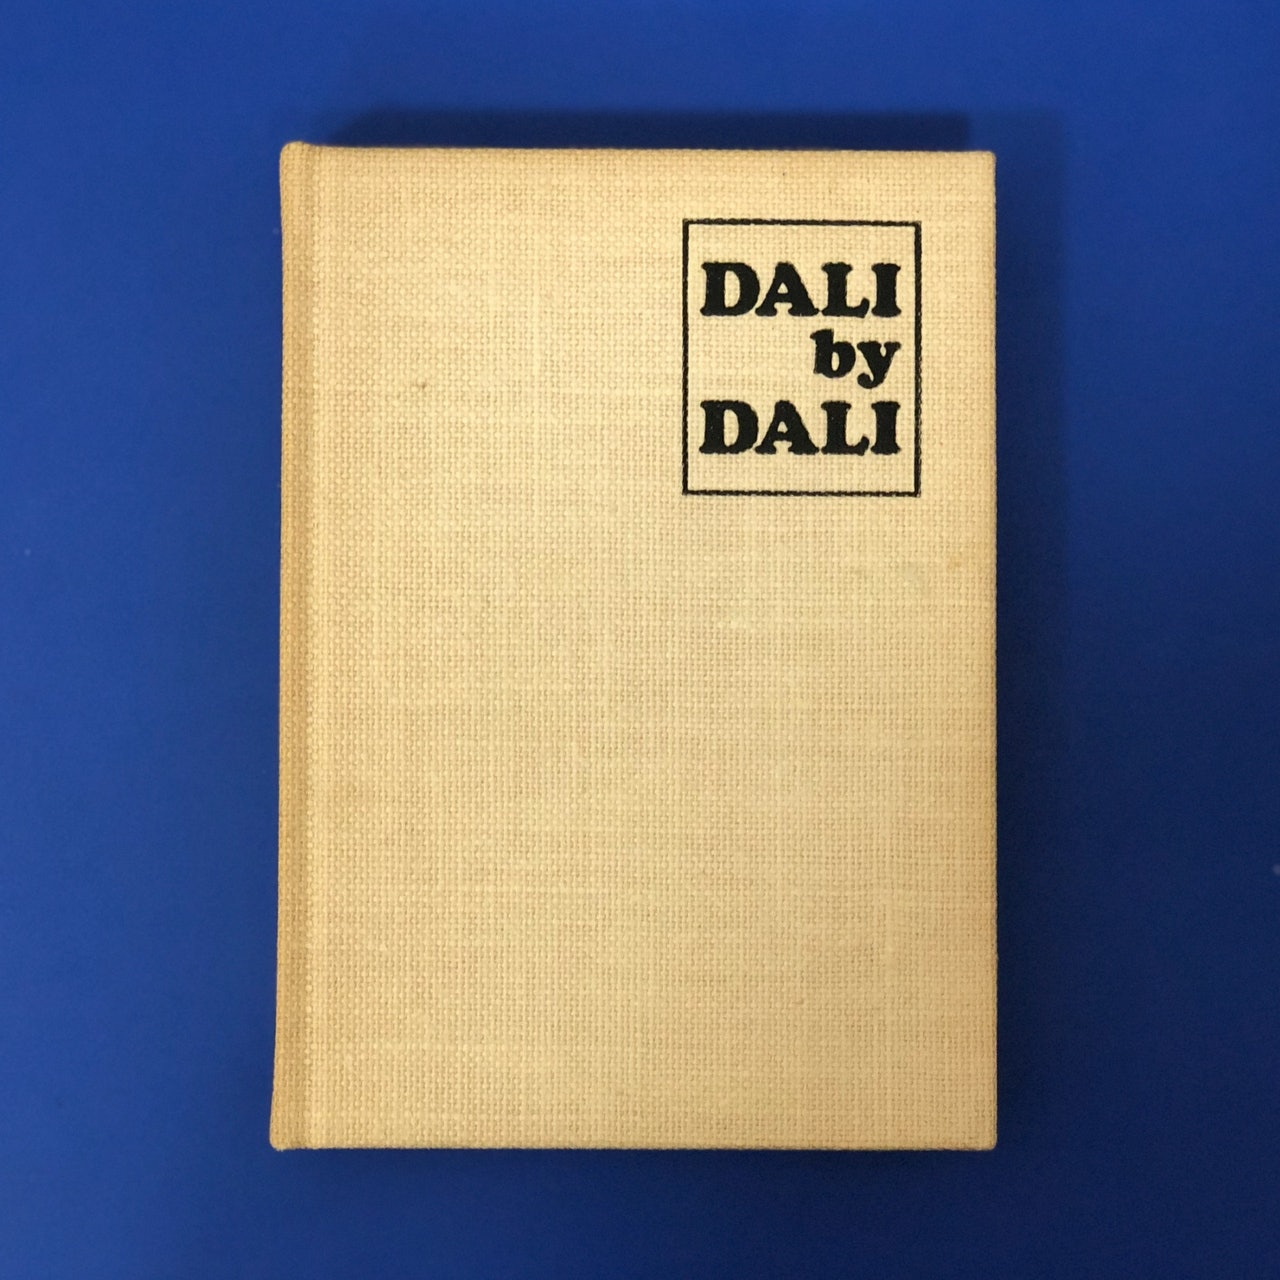 Book: Dali by Dali